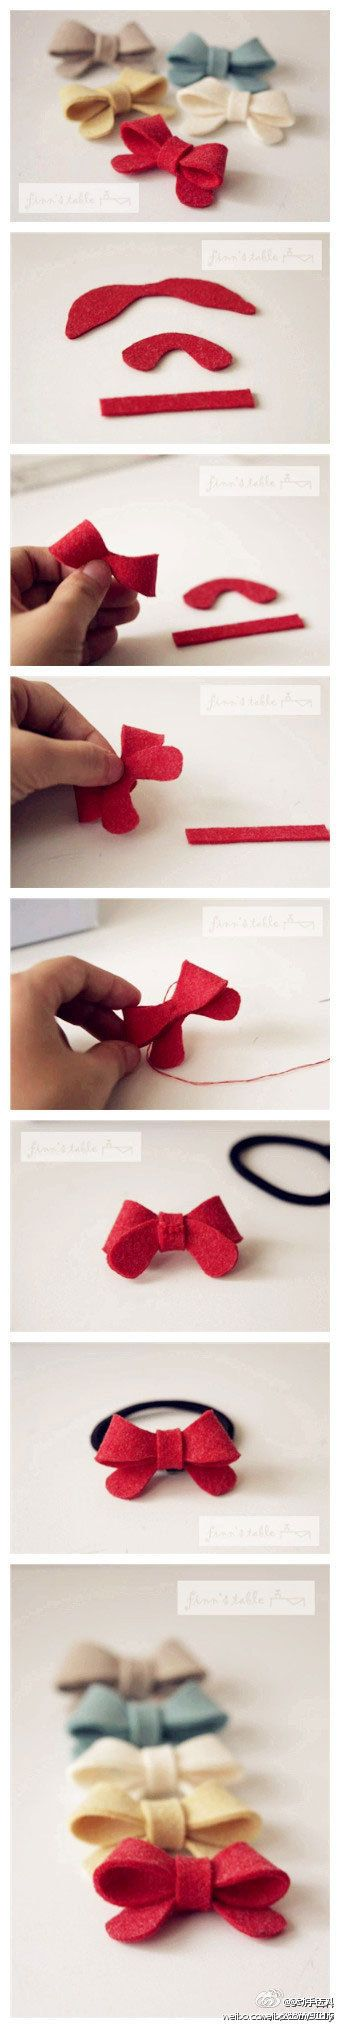 Felt Hair Bow | or a super cute bow tie for a